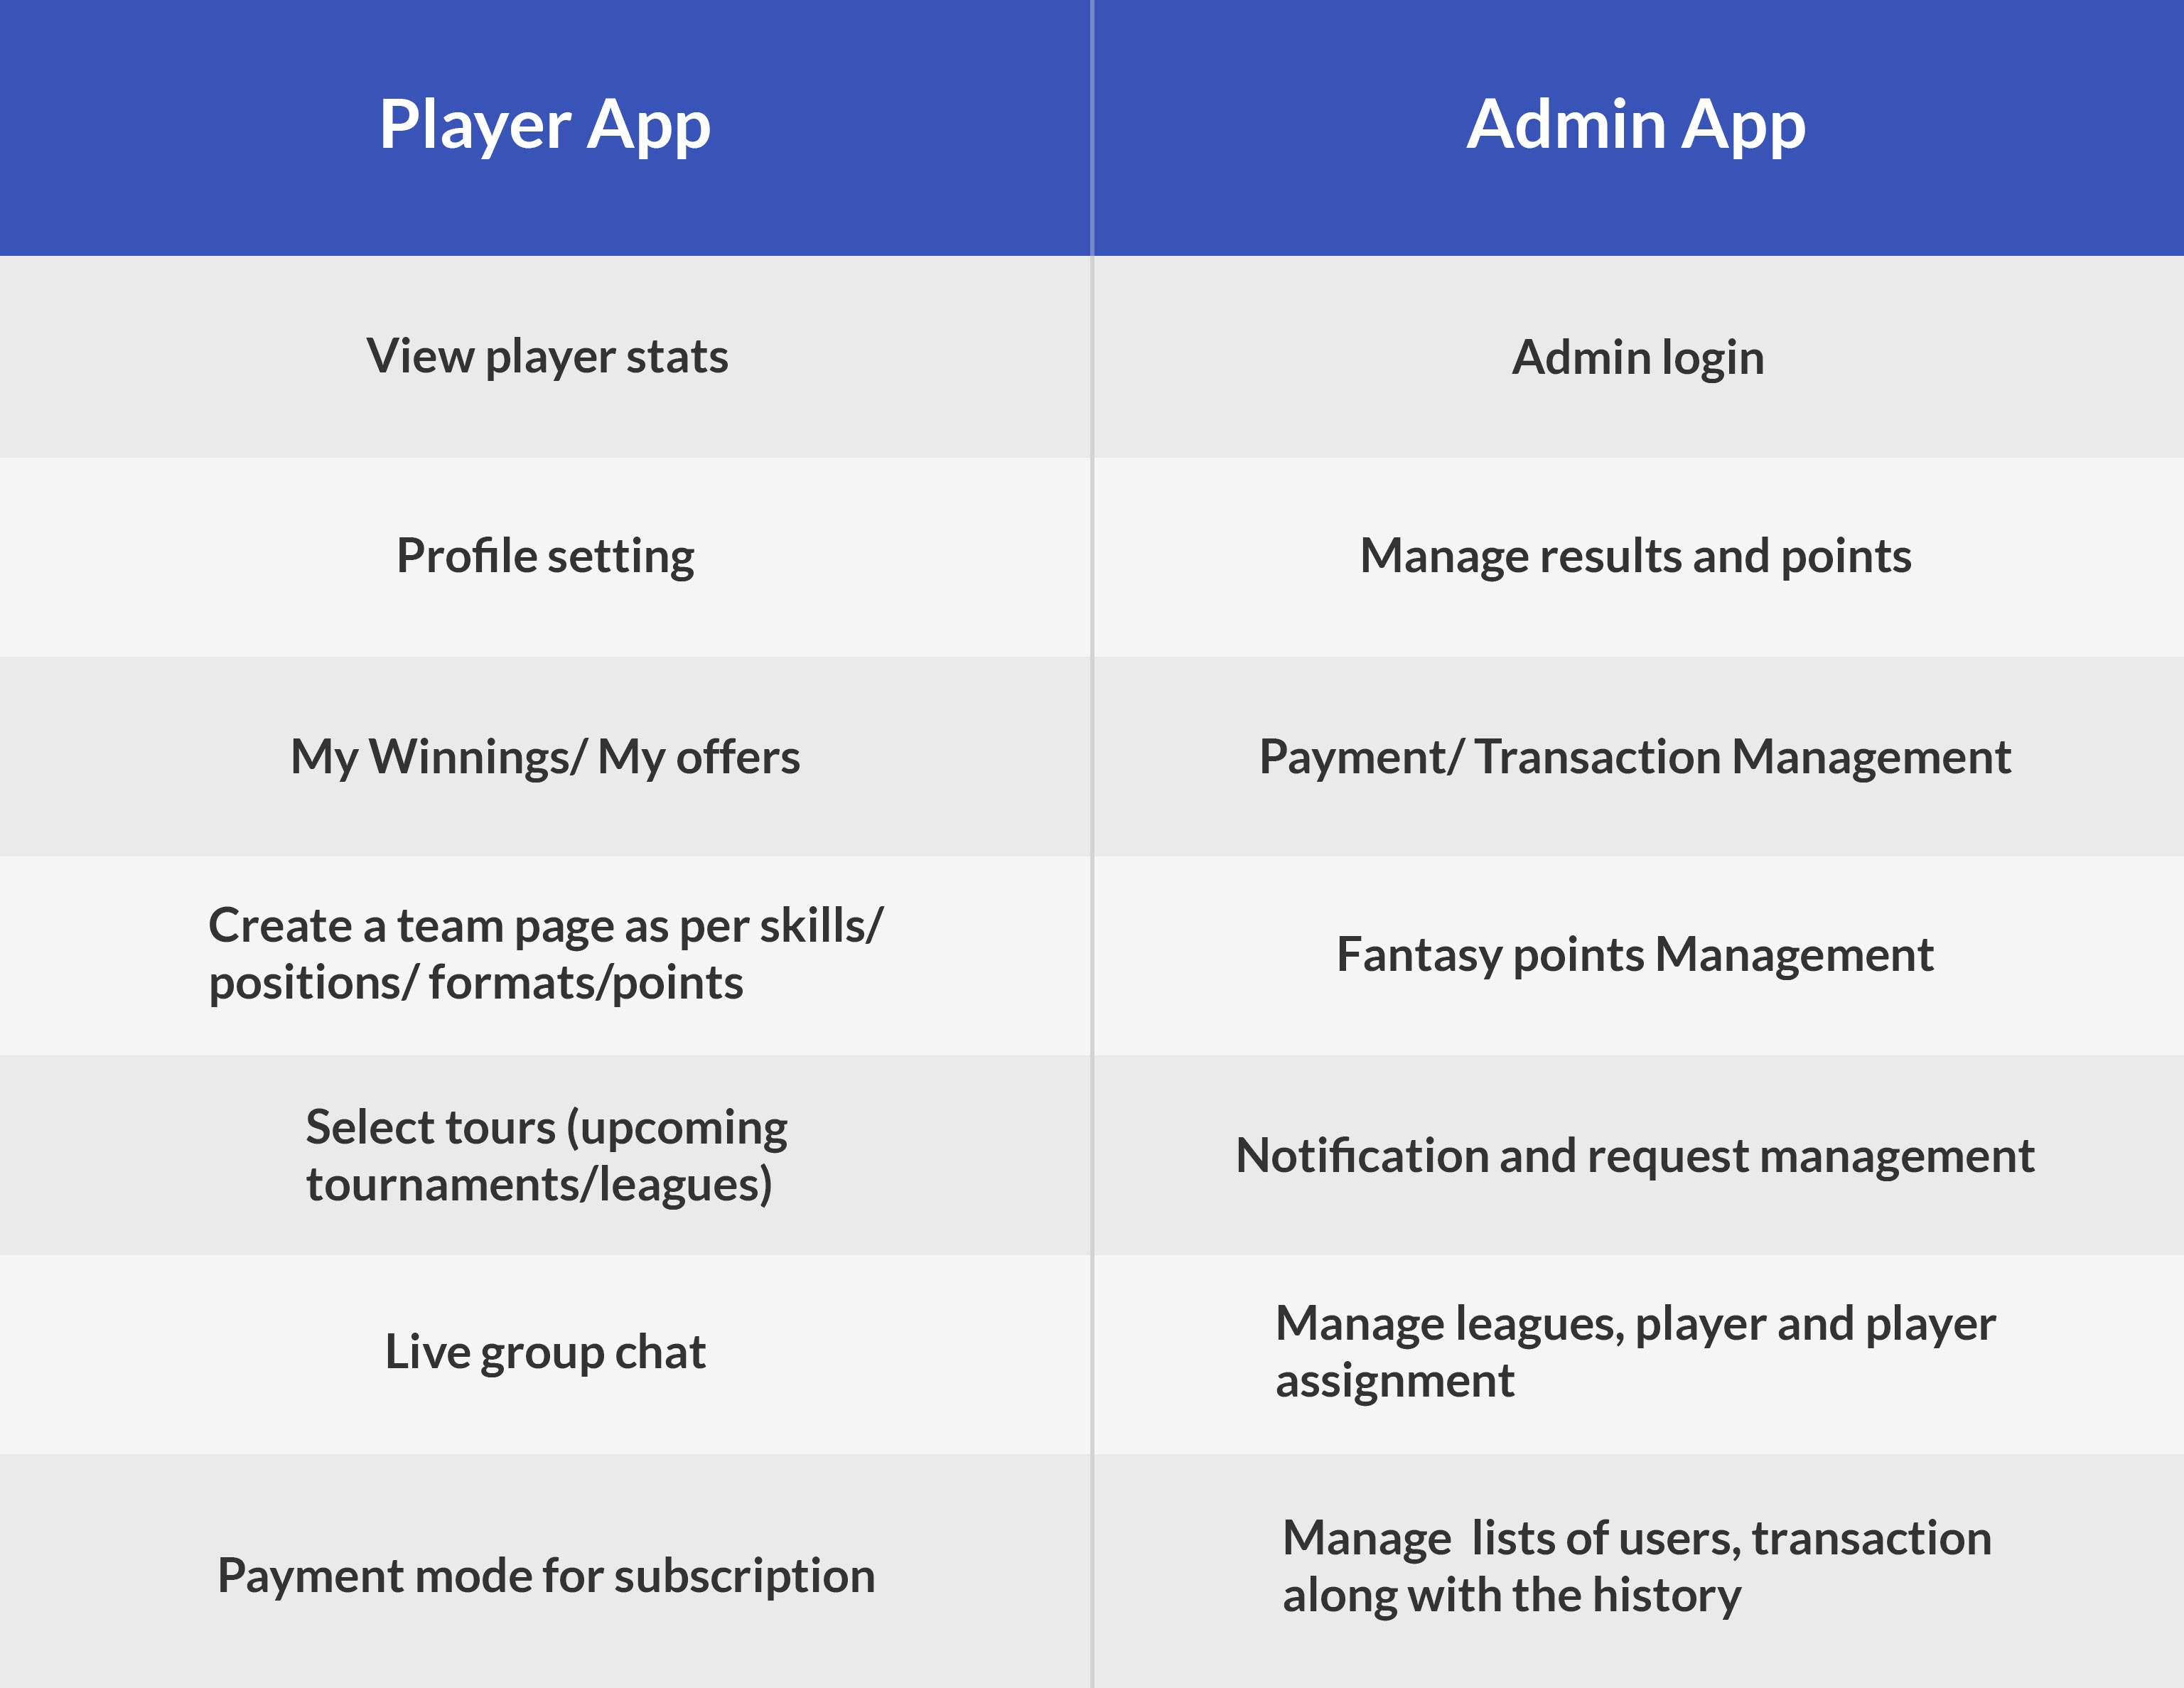 a table which compares the feature of player app and admin app of a fantasy sports app